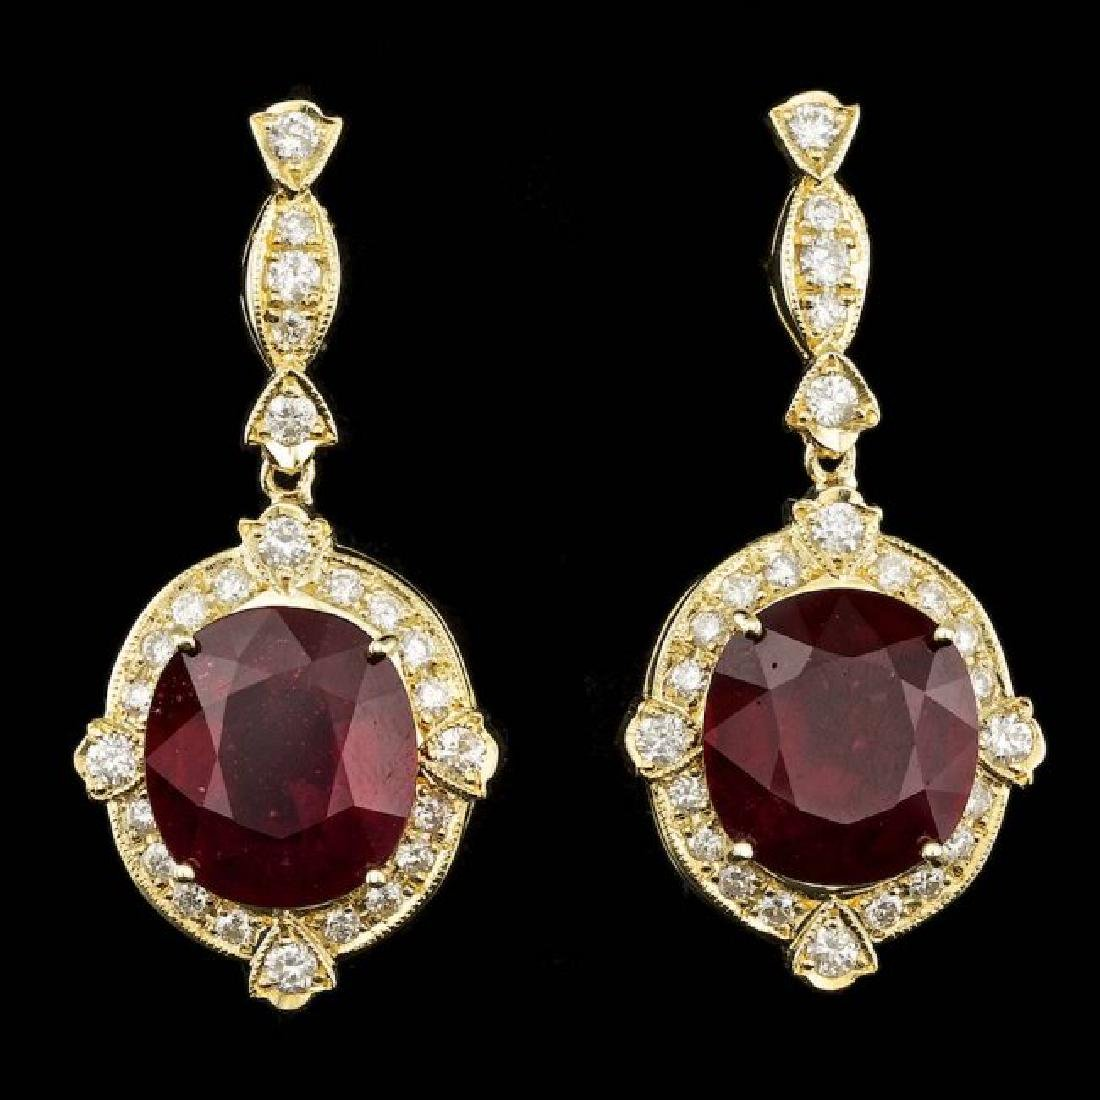 14k Gold 23.50ct Ruby 1.80ct Diamond Earrings